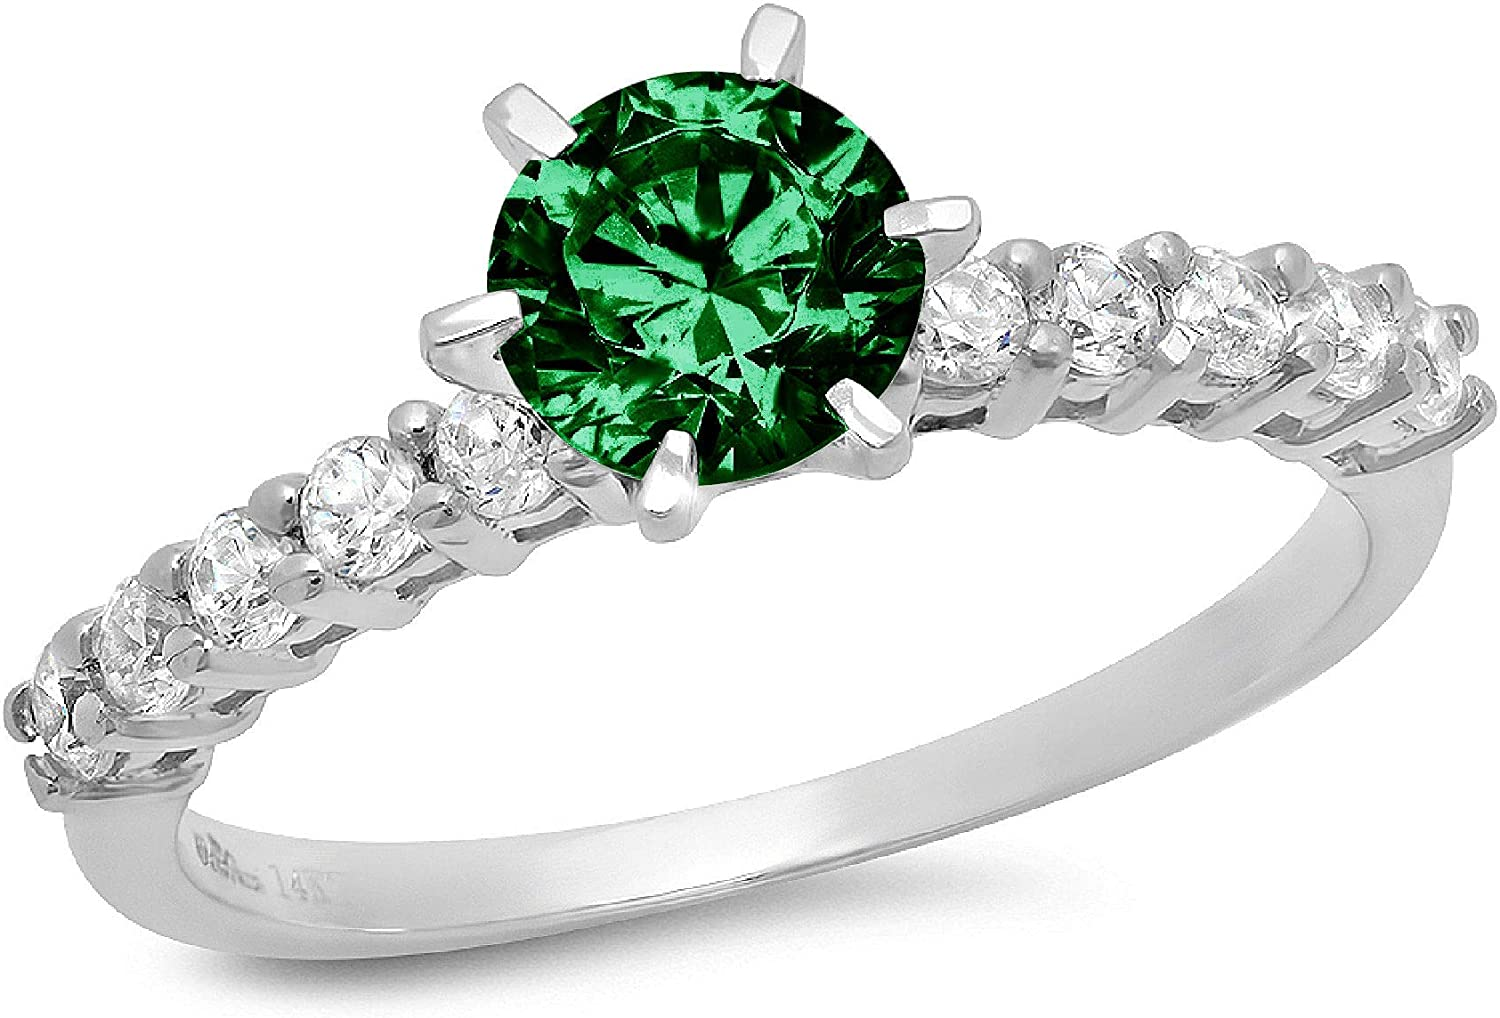 Ranking TOP2 1.20ct Brilliant Round Cut Simulated Genuine Flawless Rapid rise Solitaire